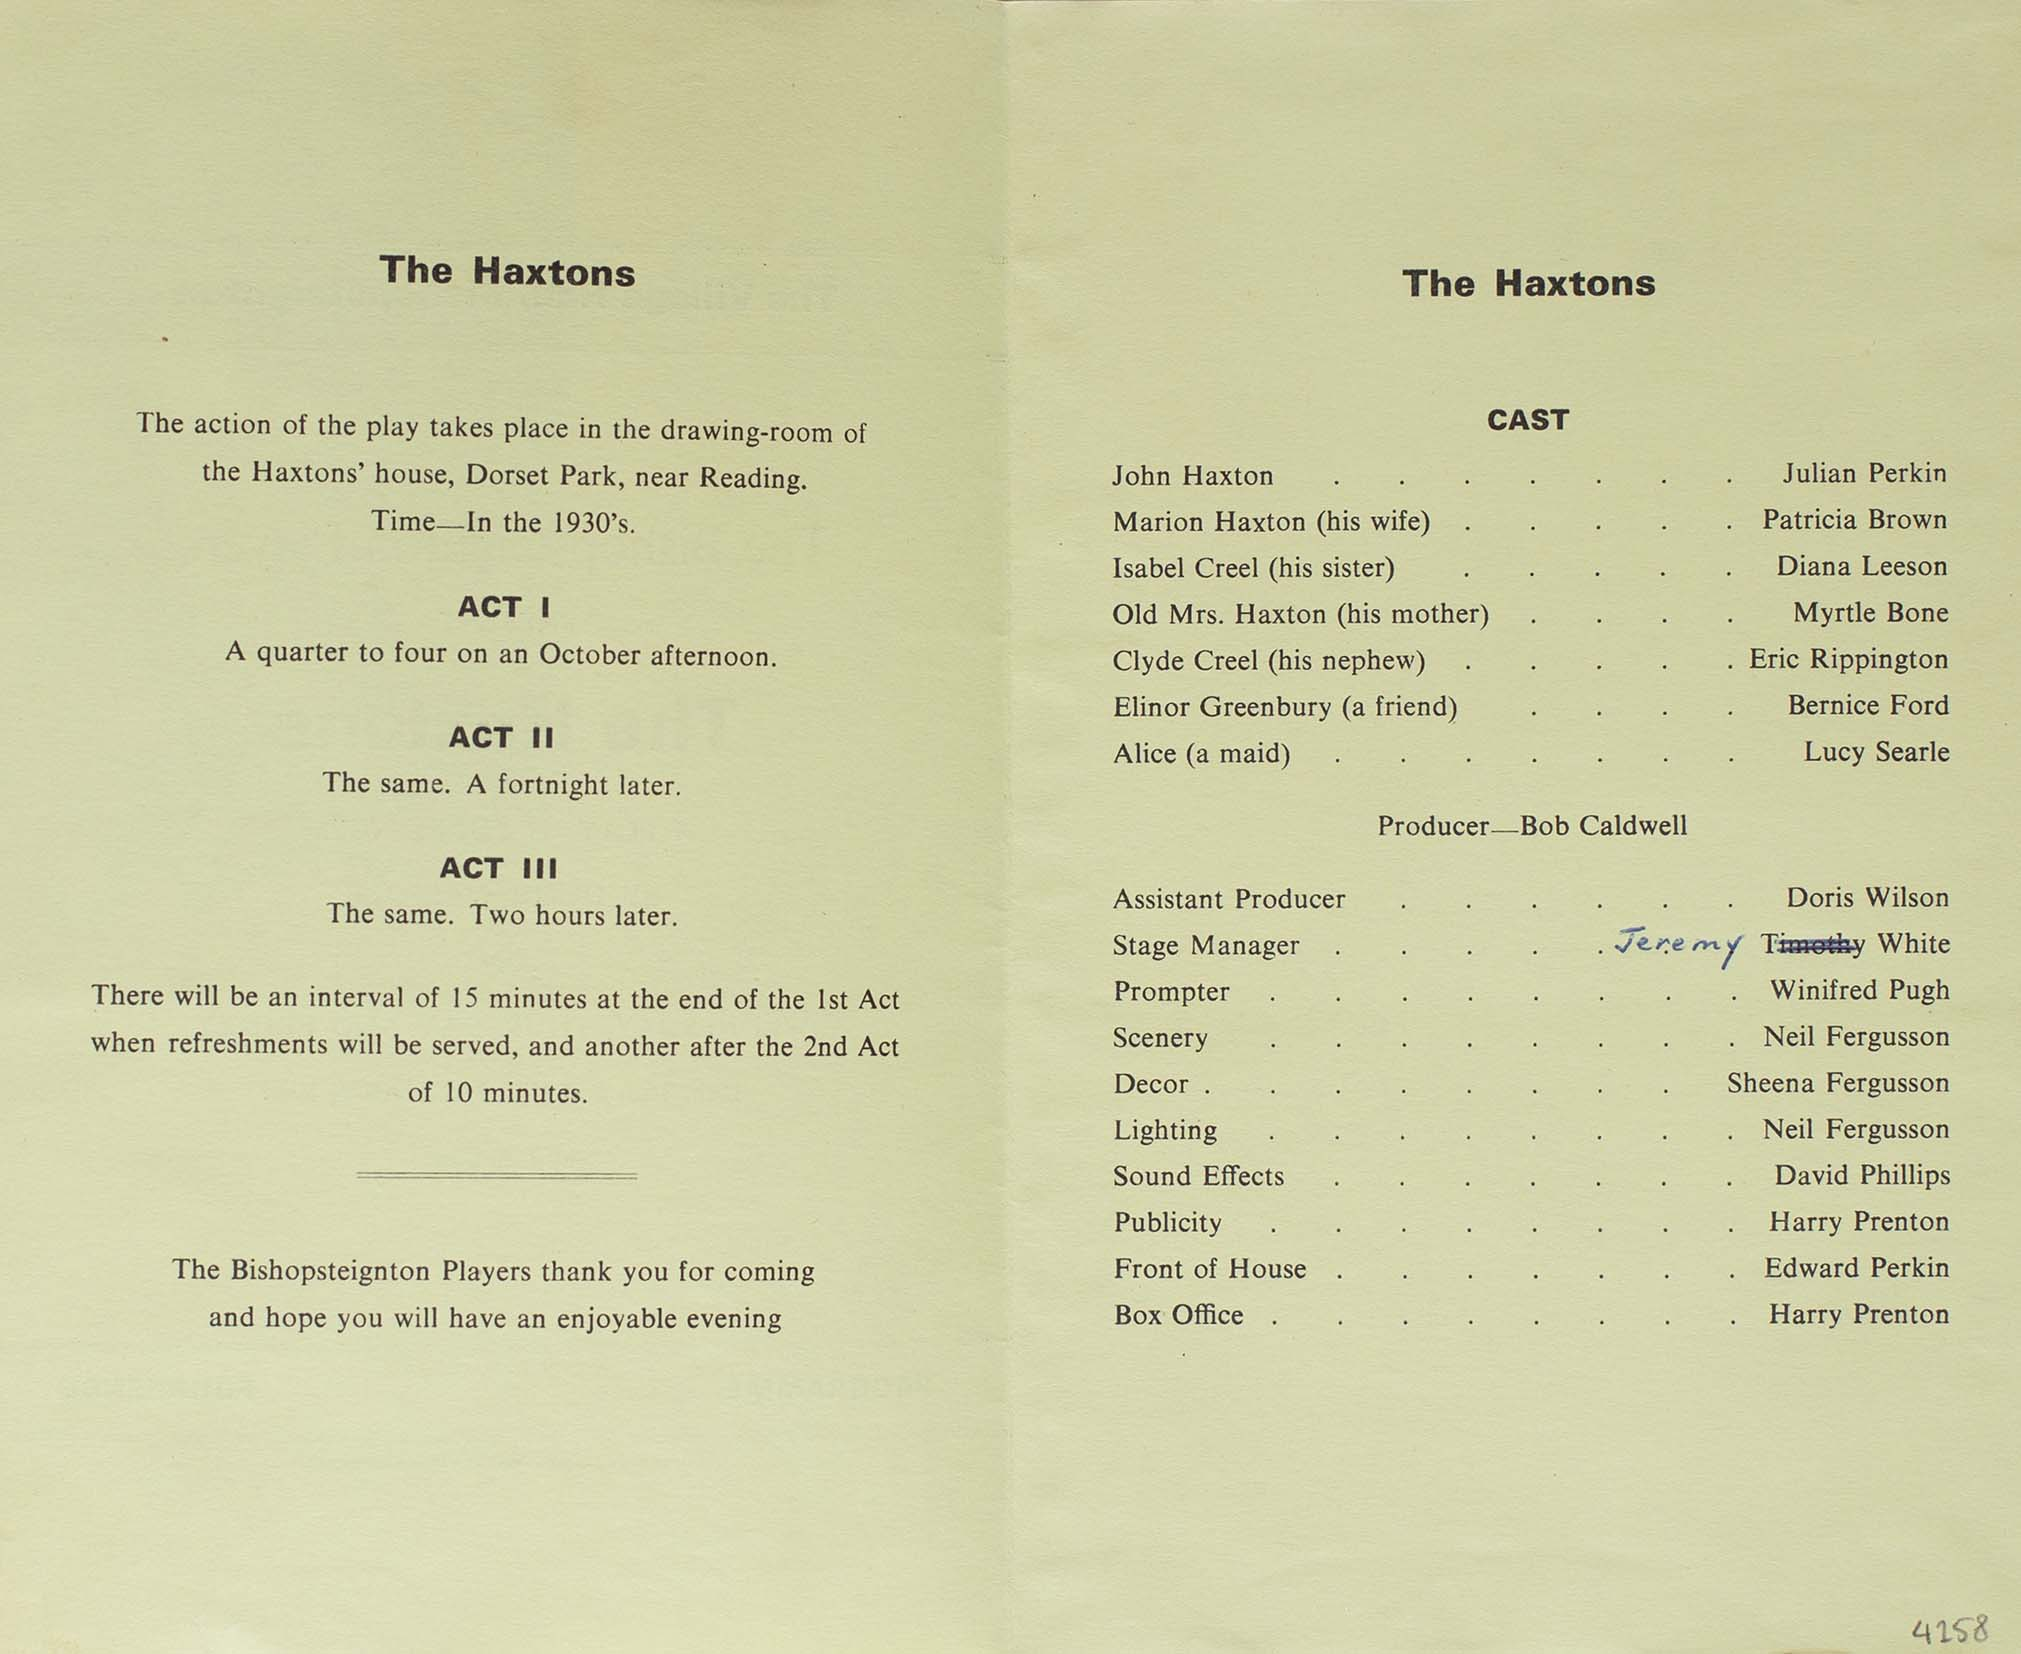 Programme for the play 'The Haxtons' presented by the Bishopsteignton Players inside